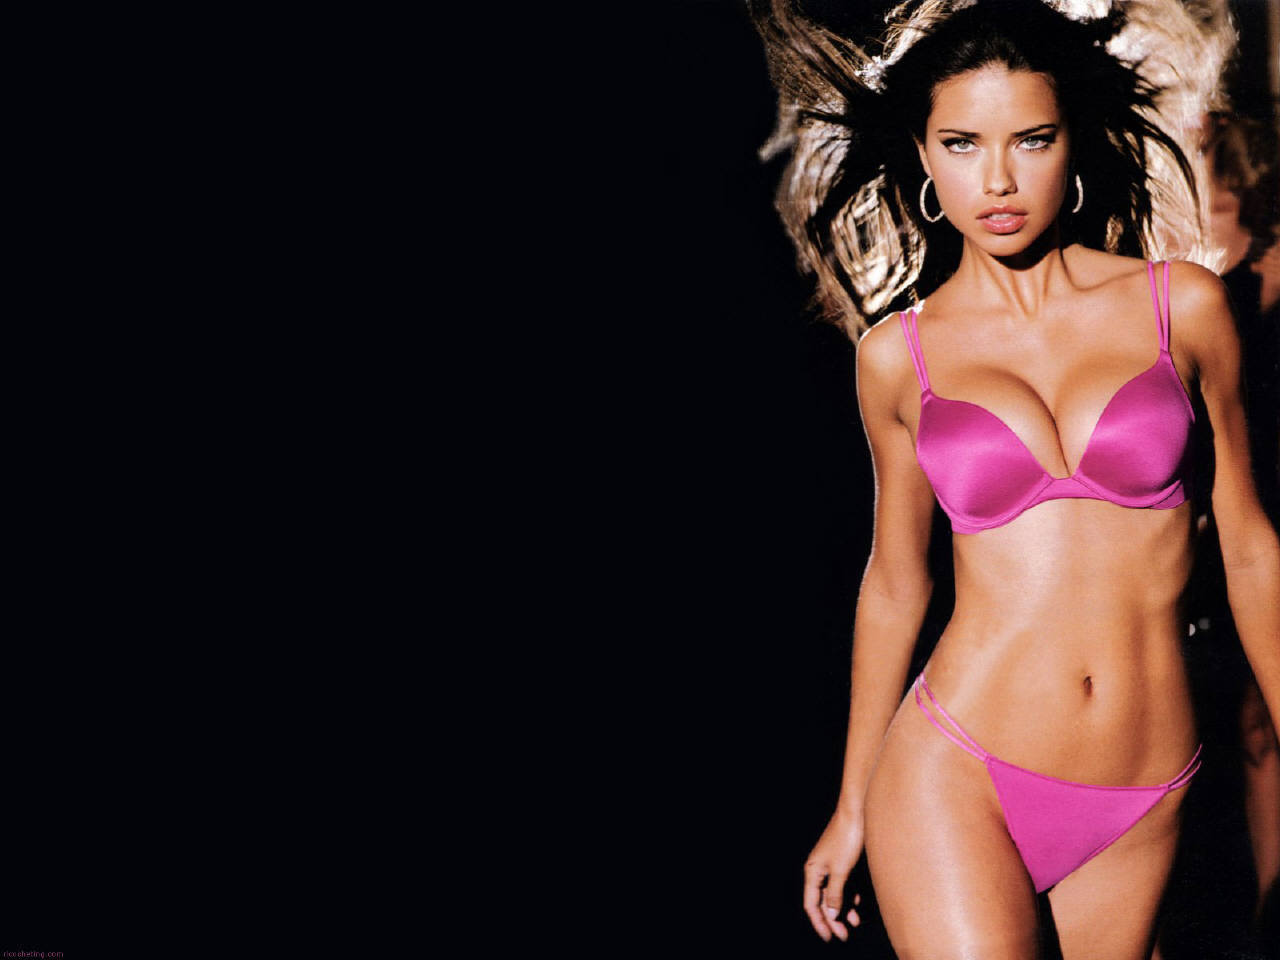 Victorias secret wallpapers wallpapers hd victorias secret victorias download voltagebd Image collections